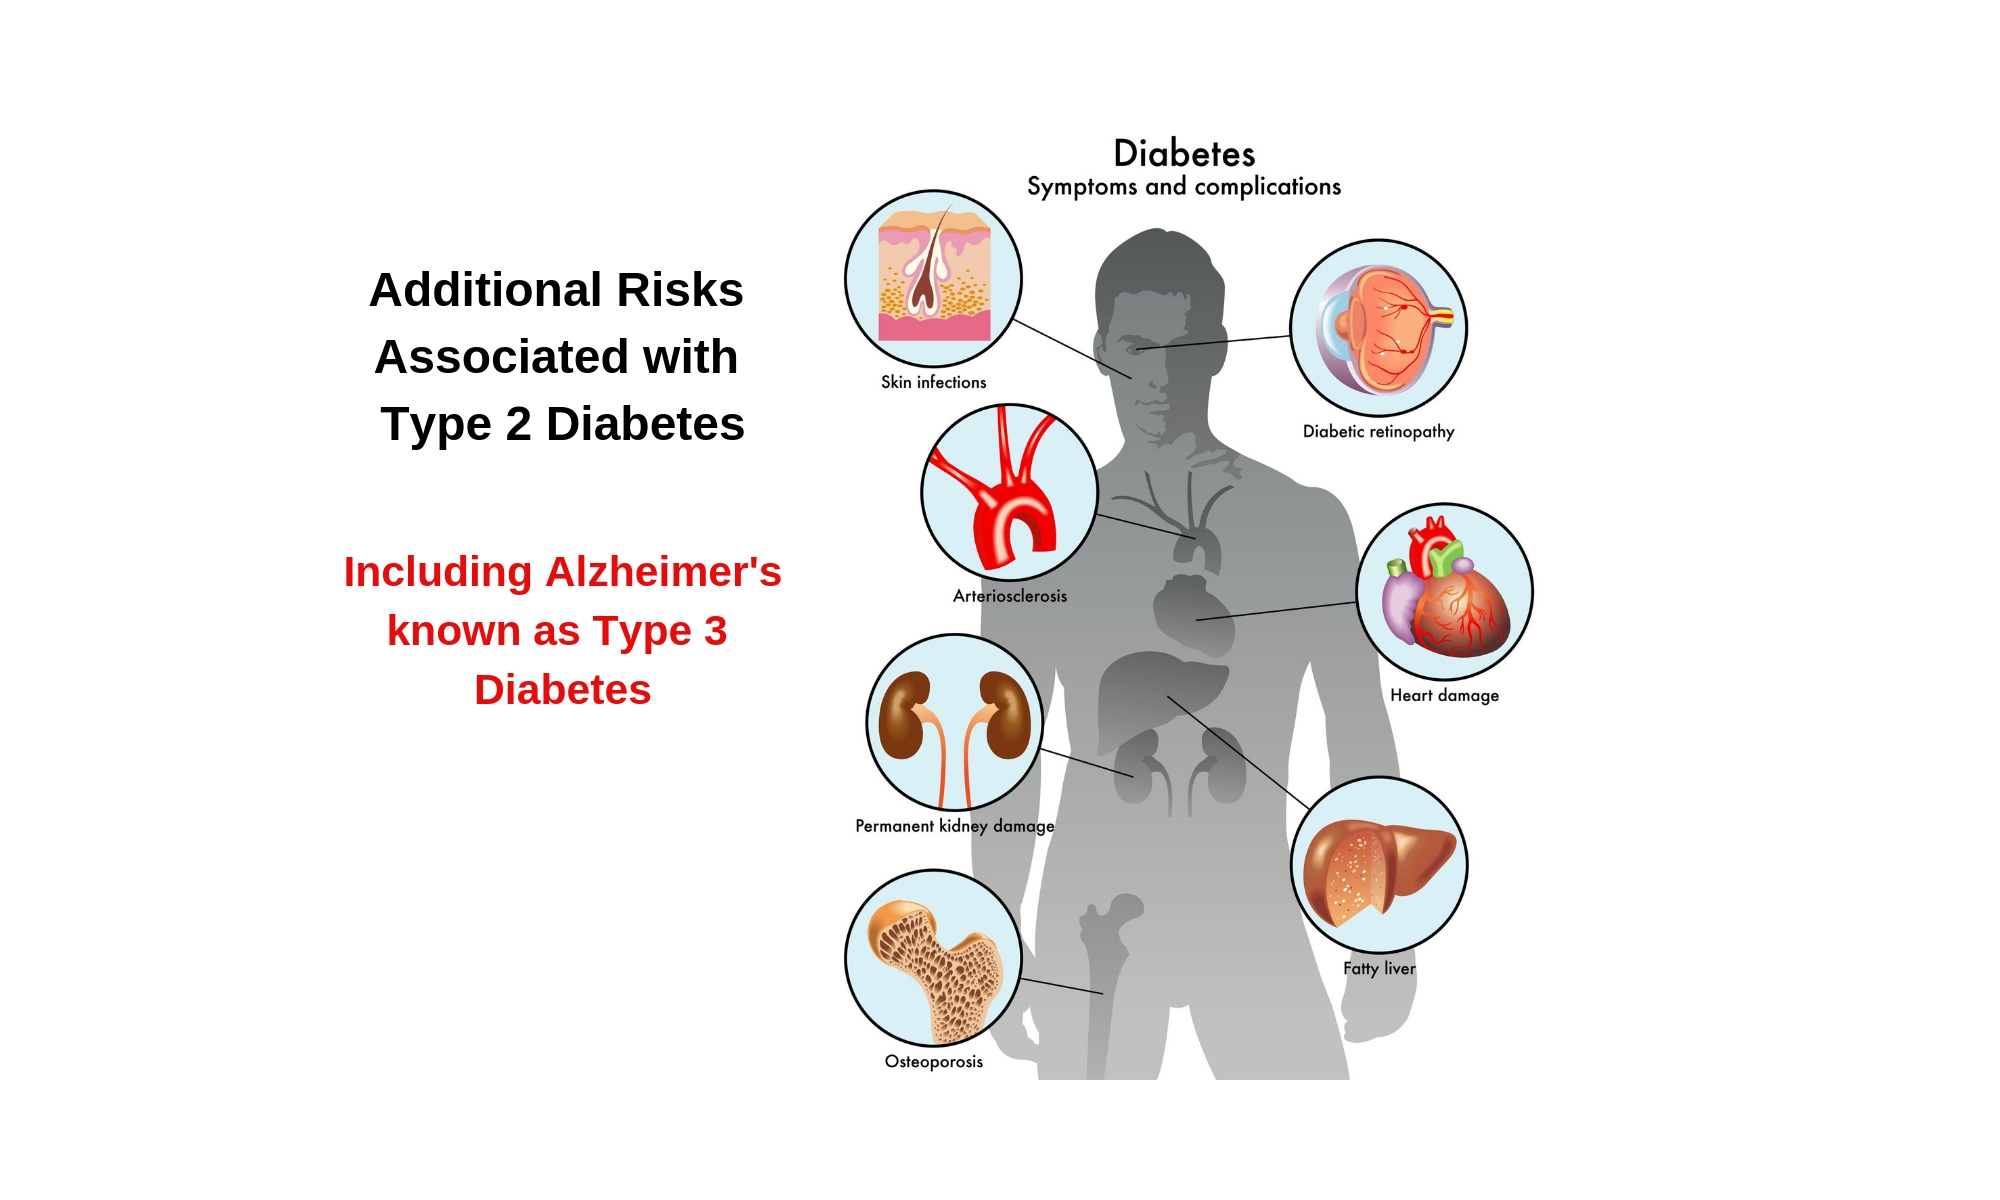 Additional risk associated with Type 2 diabetes